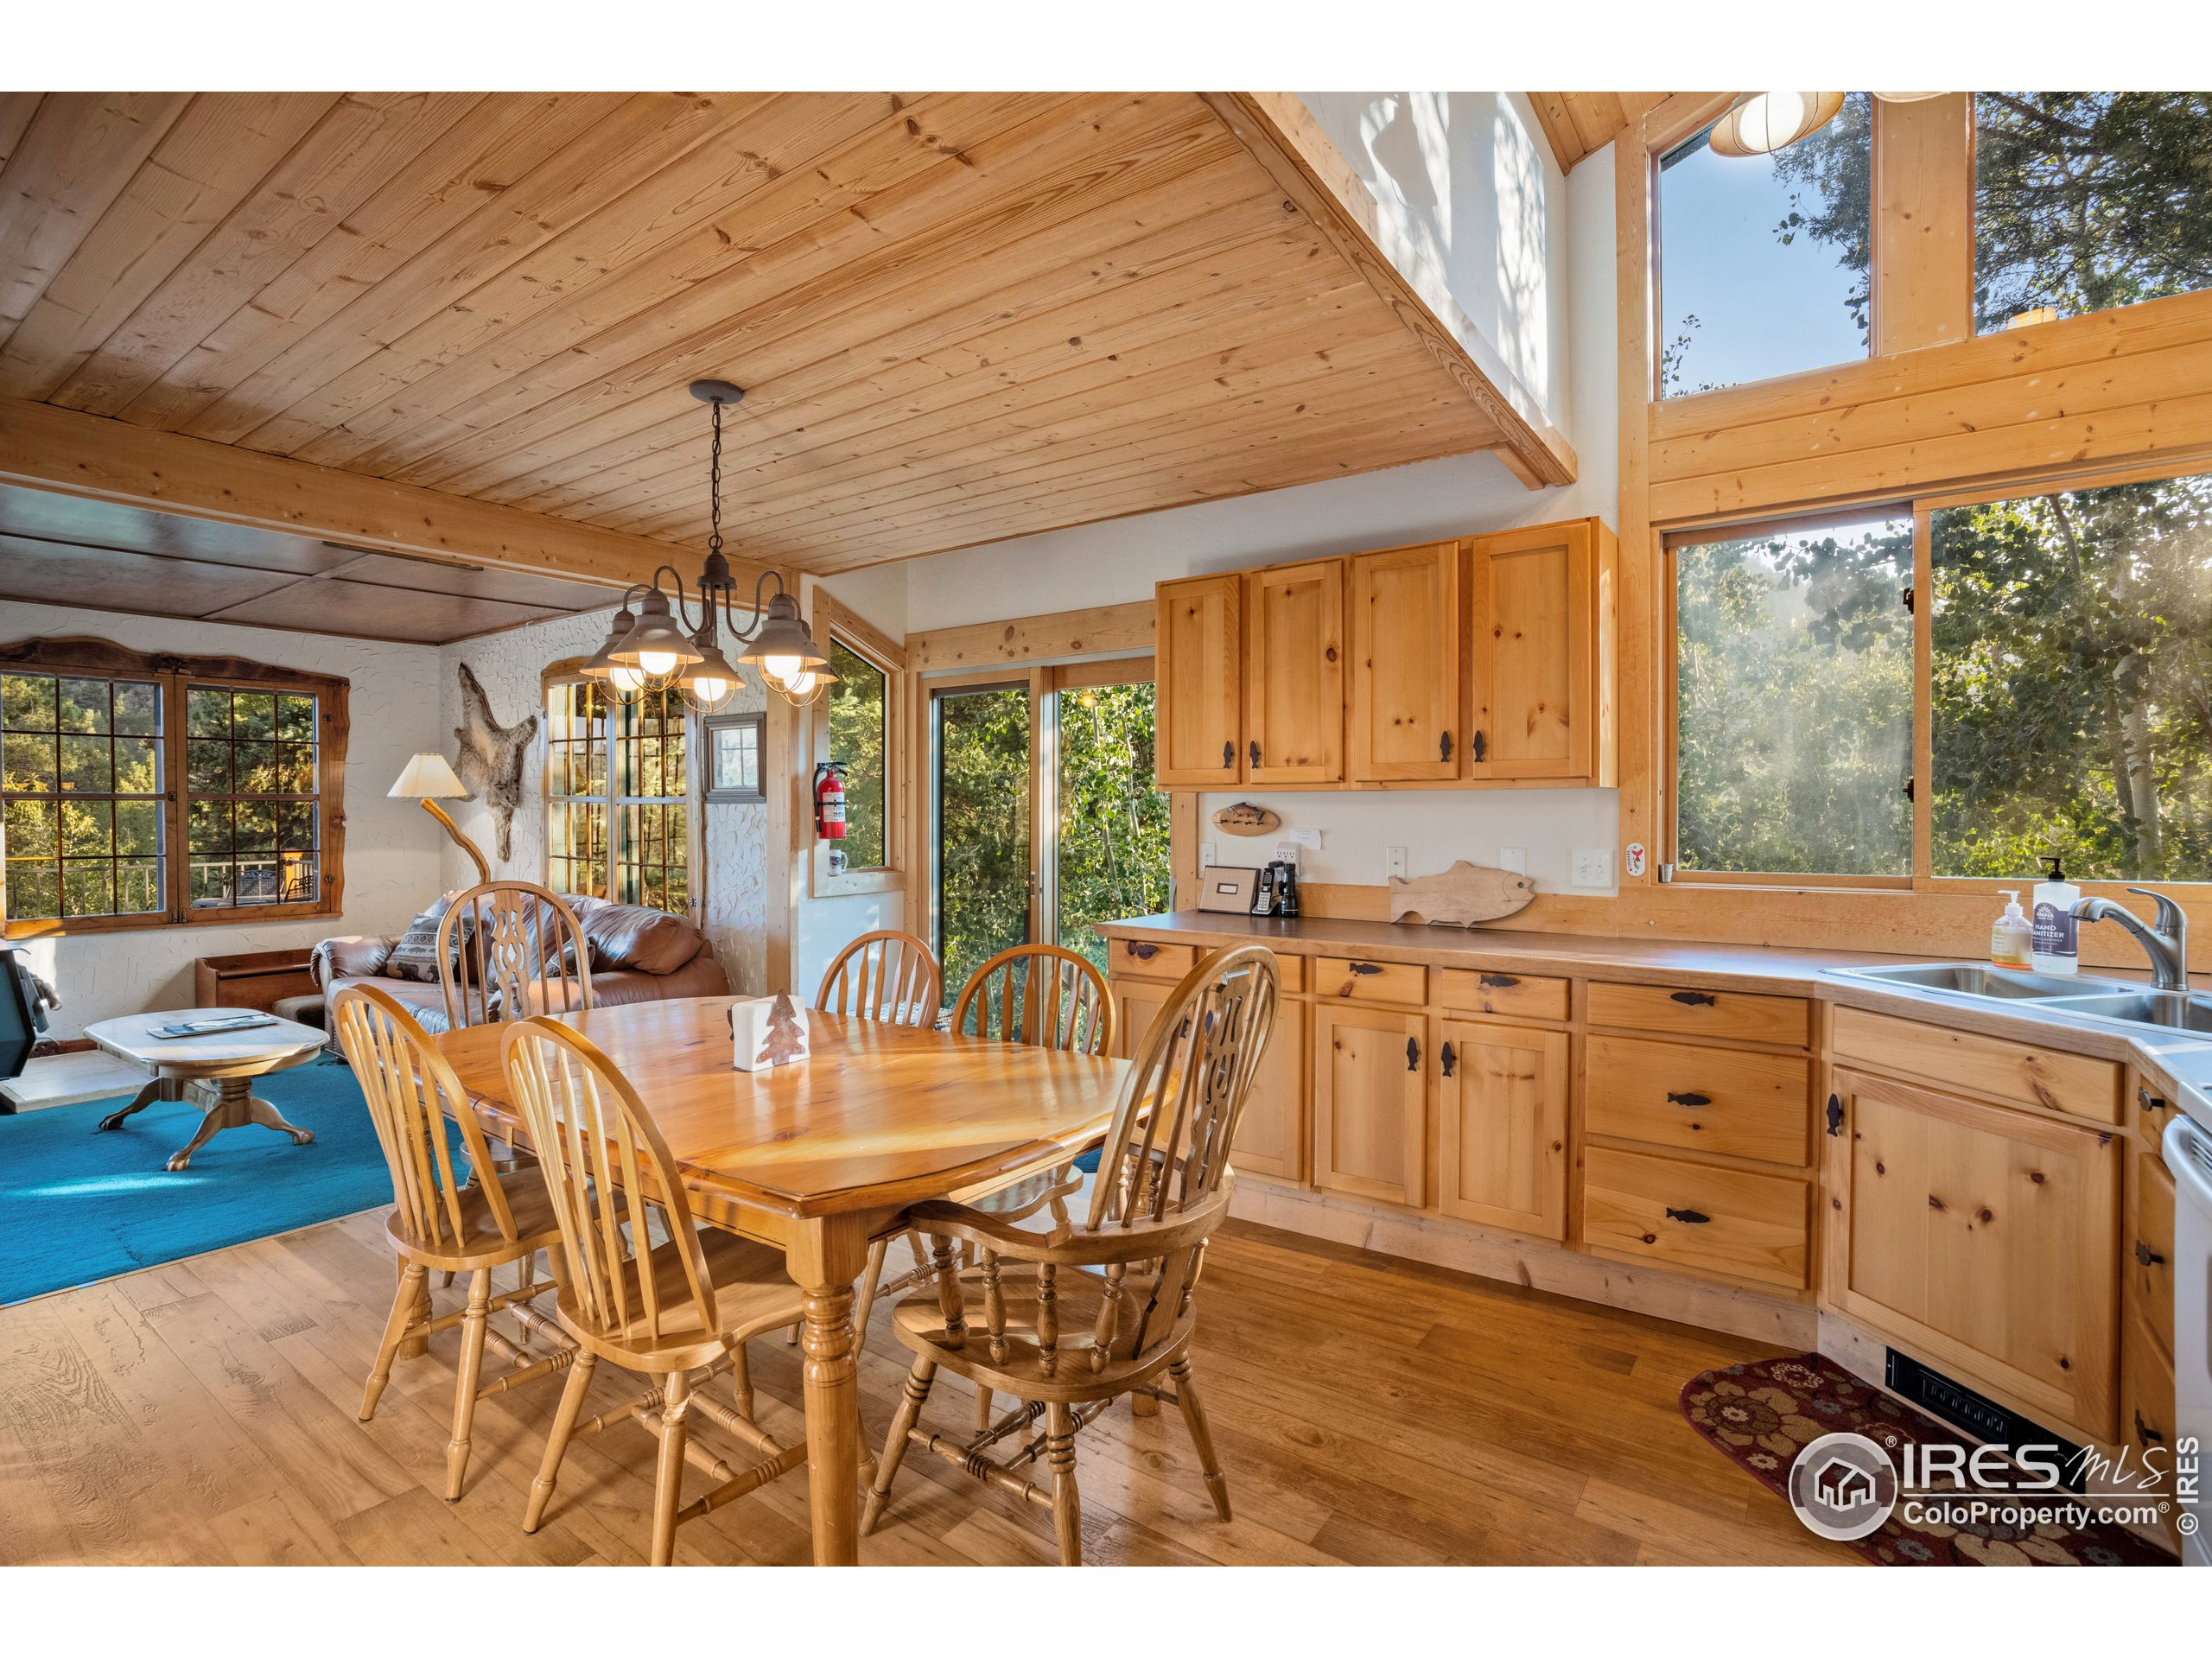 Gorgeous Pine Cabinets in Main Cabin